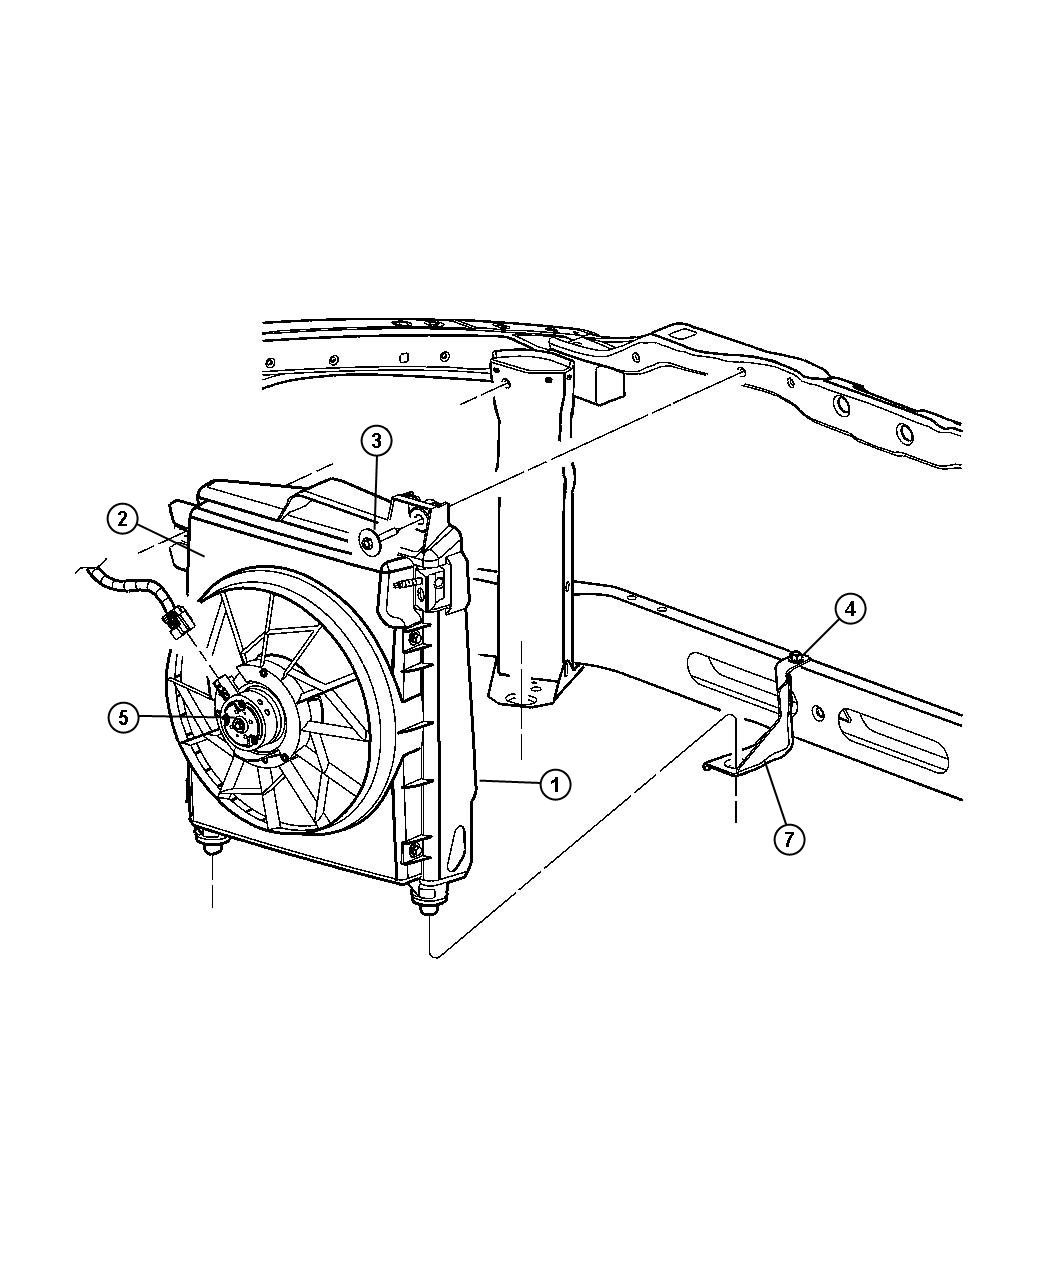 Air Conditioning Parts : Dodge ram air conditioning condenser and fan